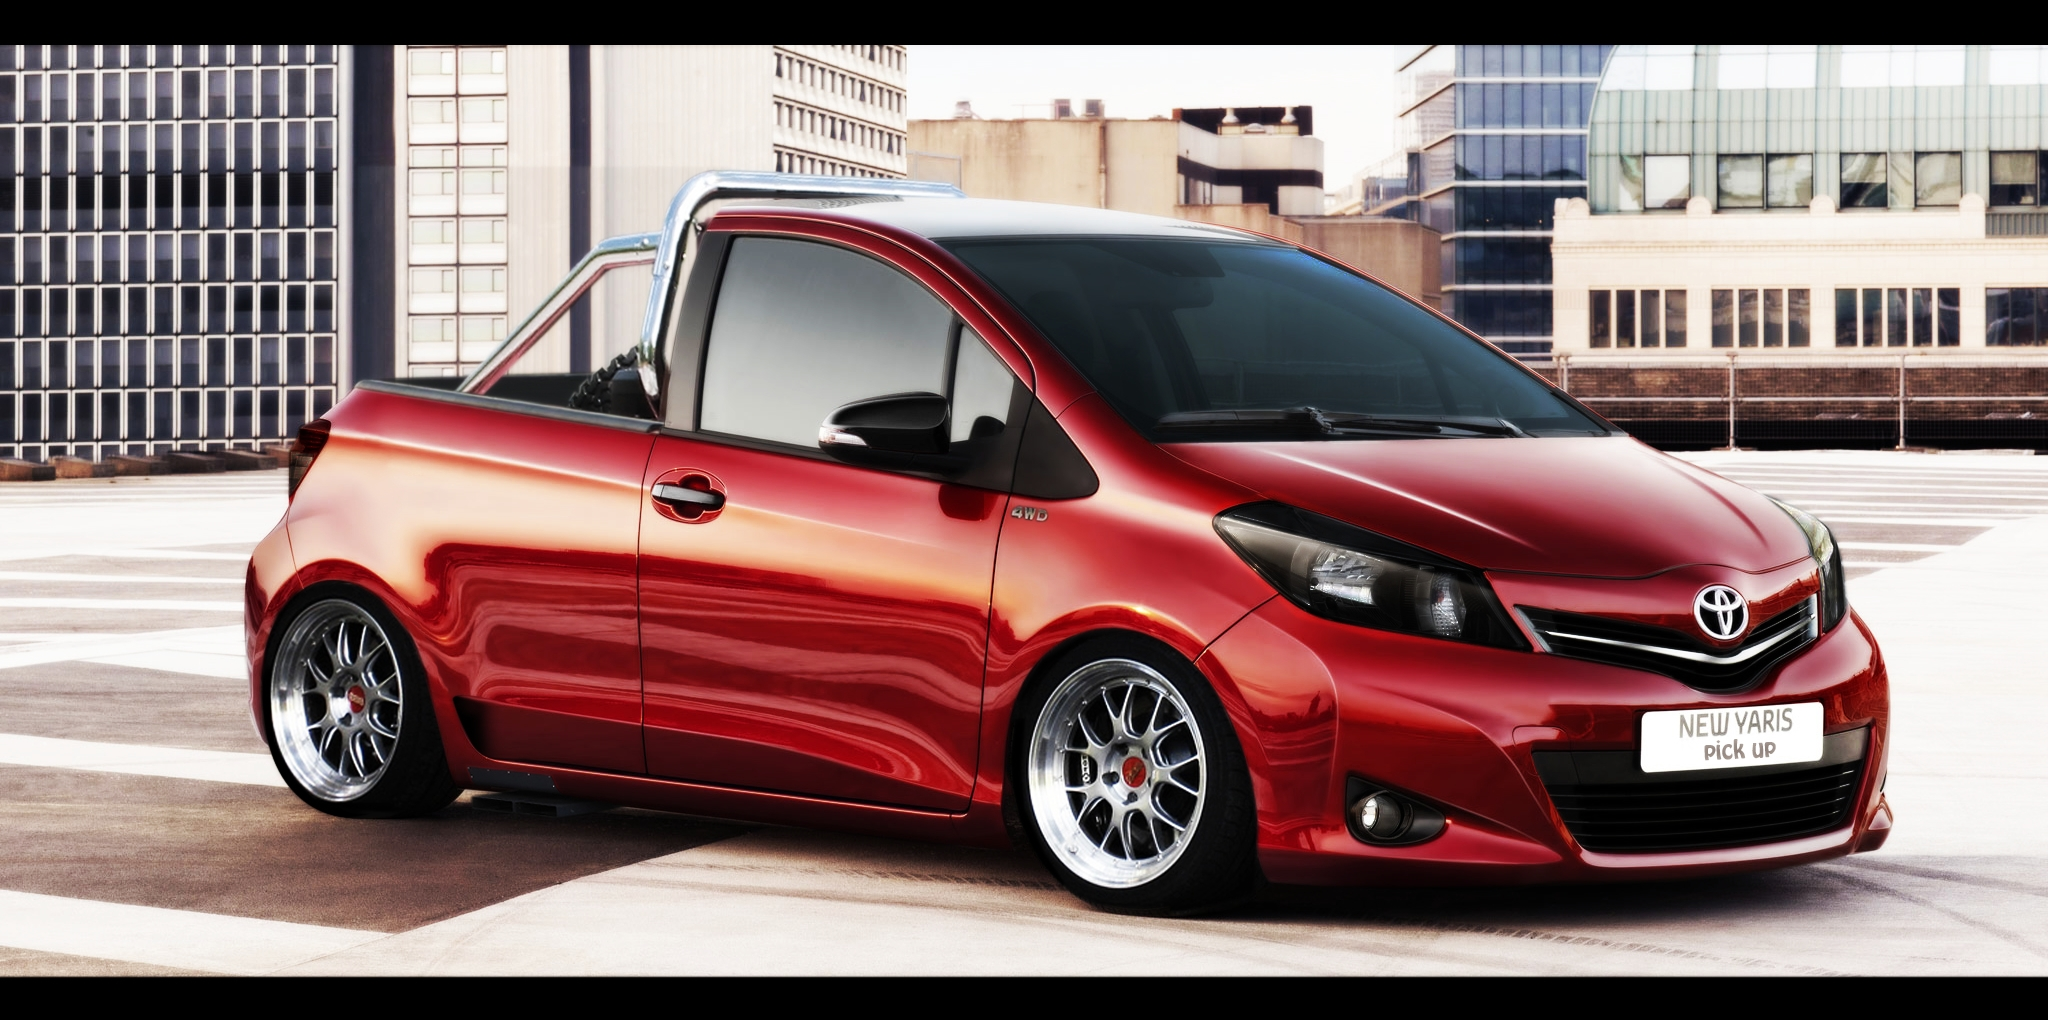 Toyota Yaris Pick Up By Renato